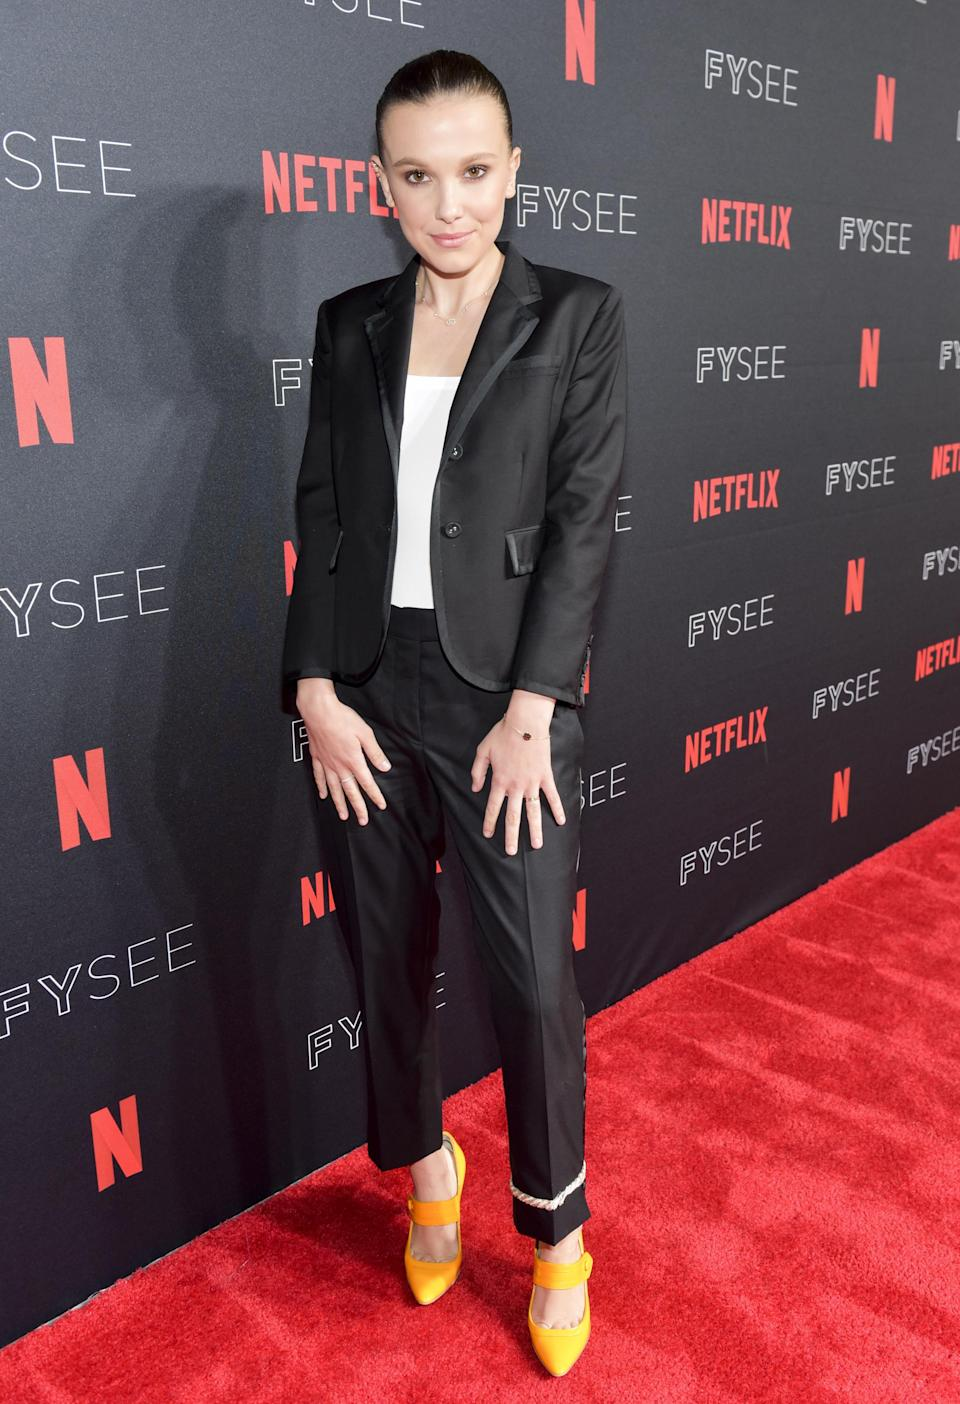 <p>The Calvin Klein muse looked chic in a black suit and white top which she wore with patent yellow heels to add a pop of colour. <em>[Photo: Getty]</em> </p>